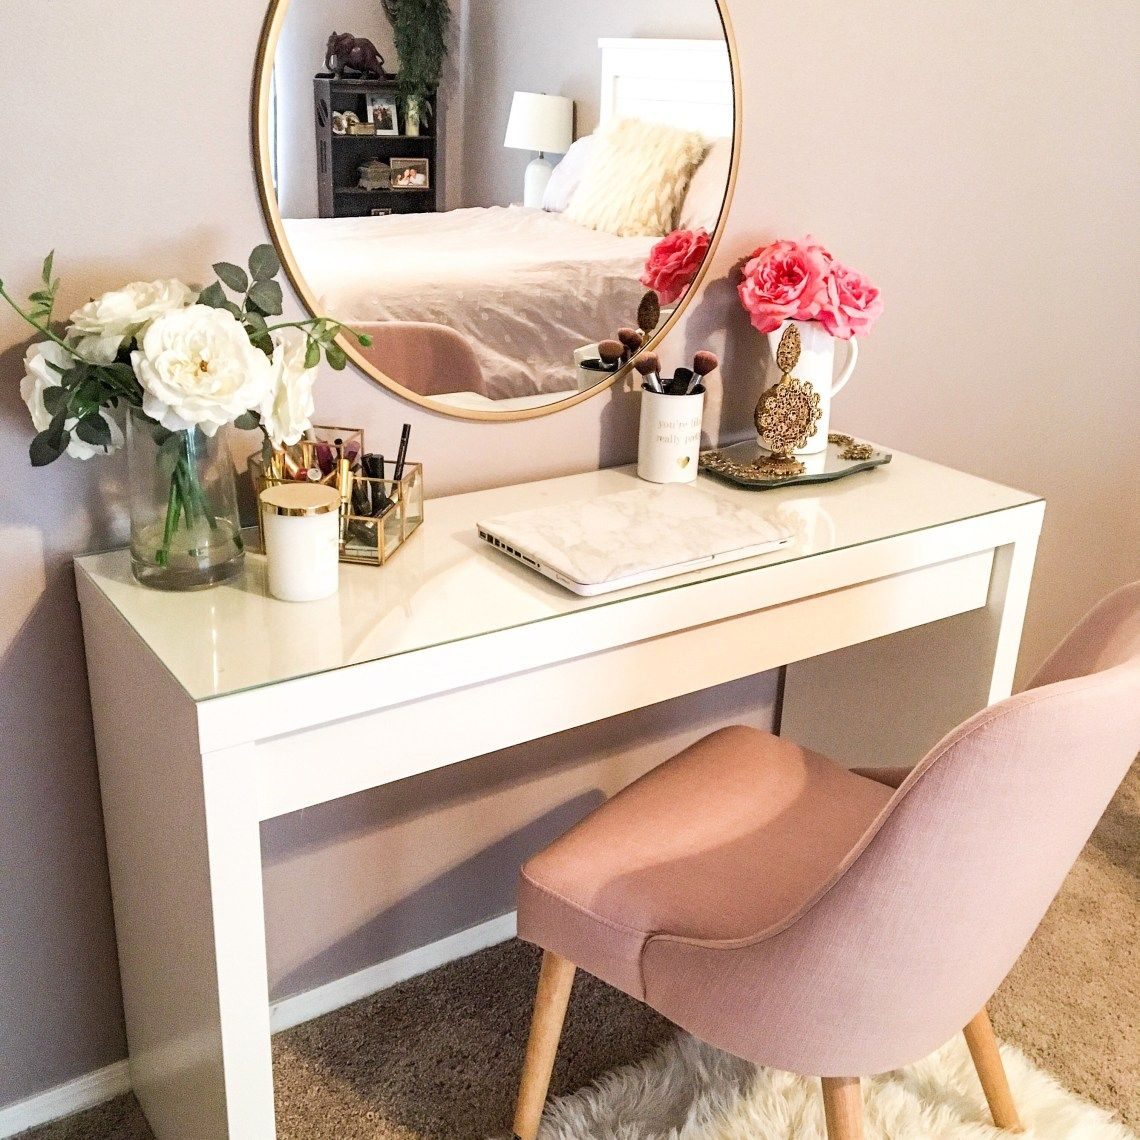 How to Style the Ikea Malm Vanity Table in 2020 (With